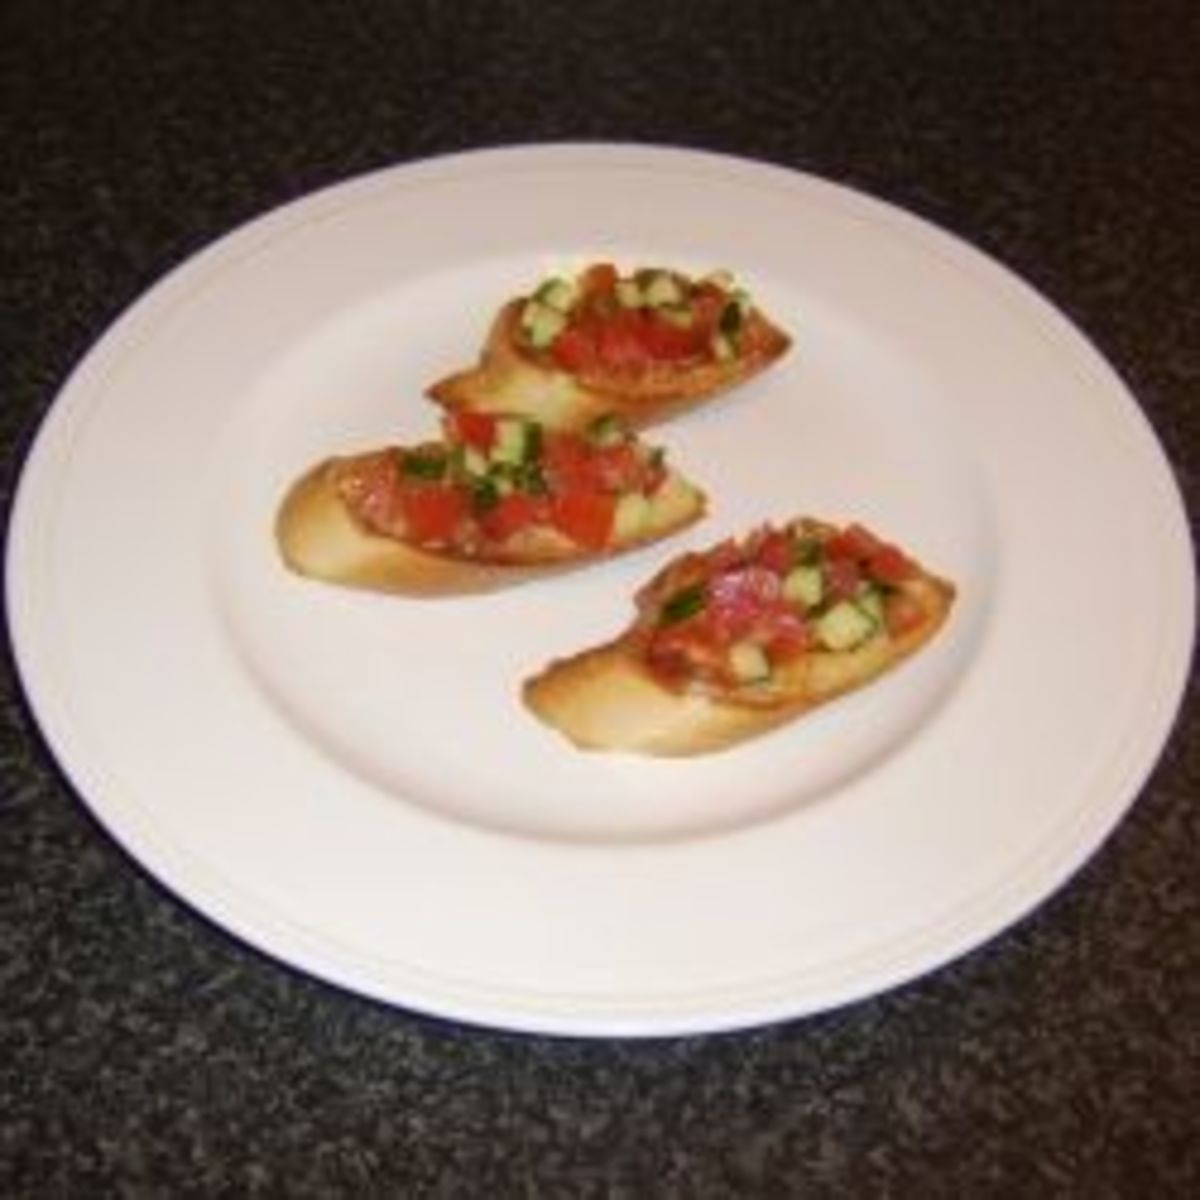 How to Make Bruschetta and Bruschetta Serving Suggestions